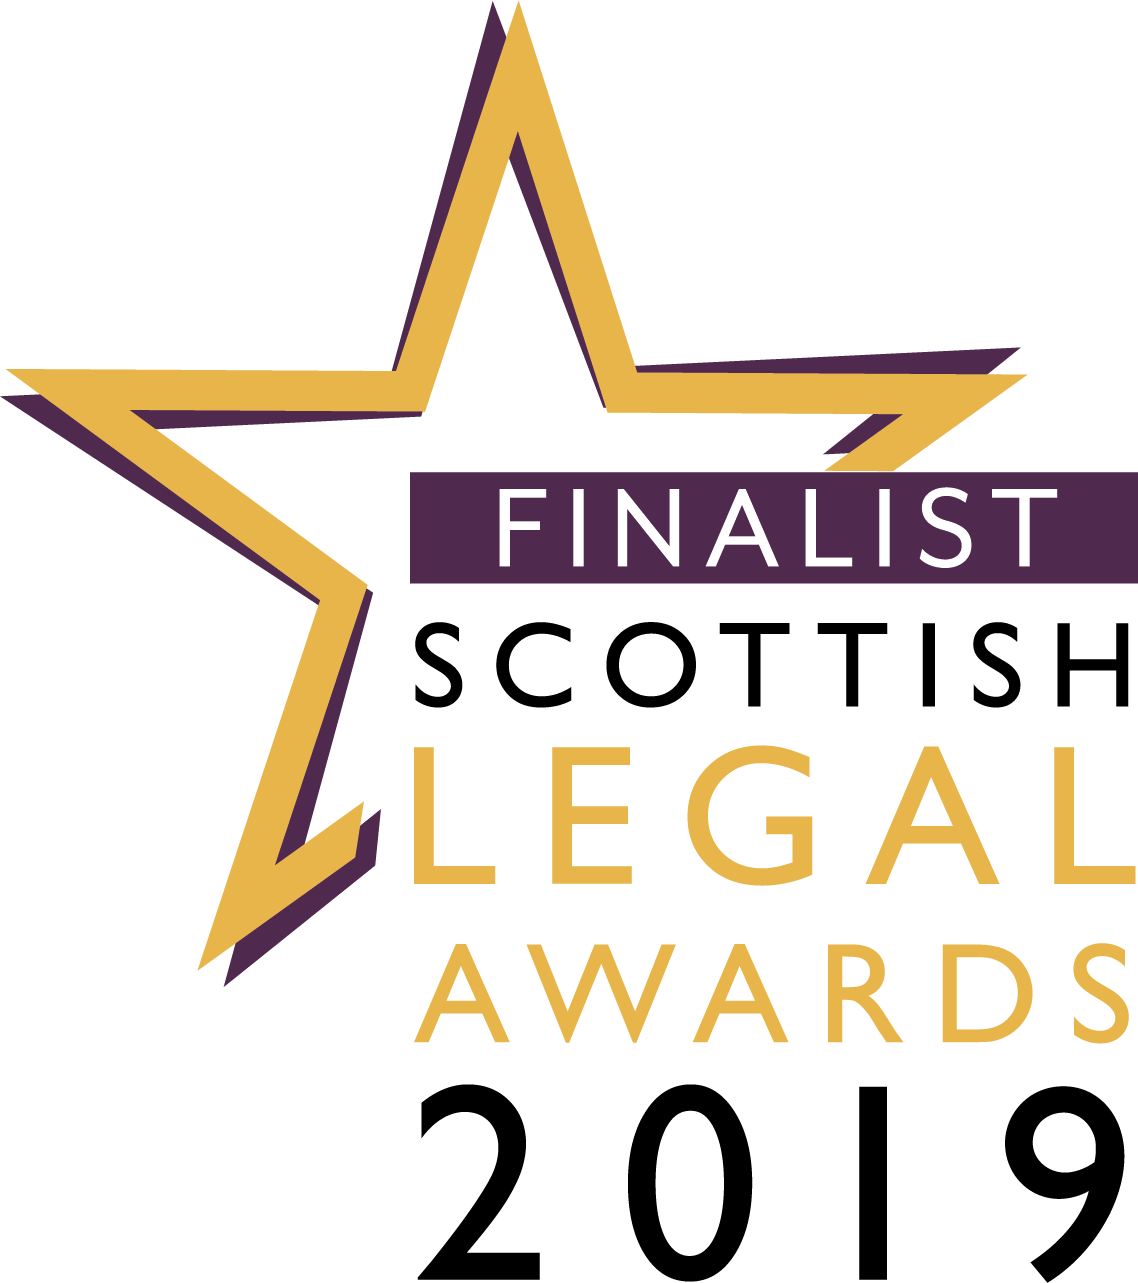 Scottish Legal Awards 2019